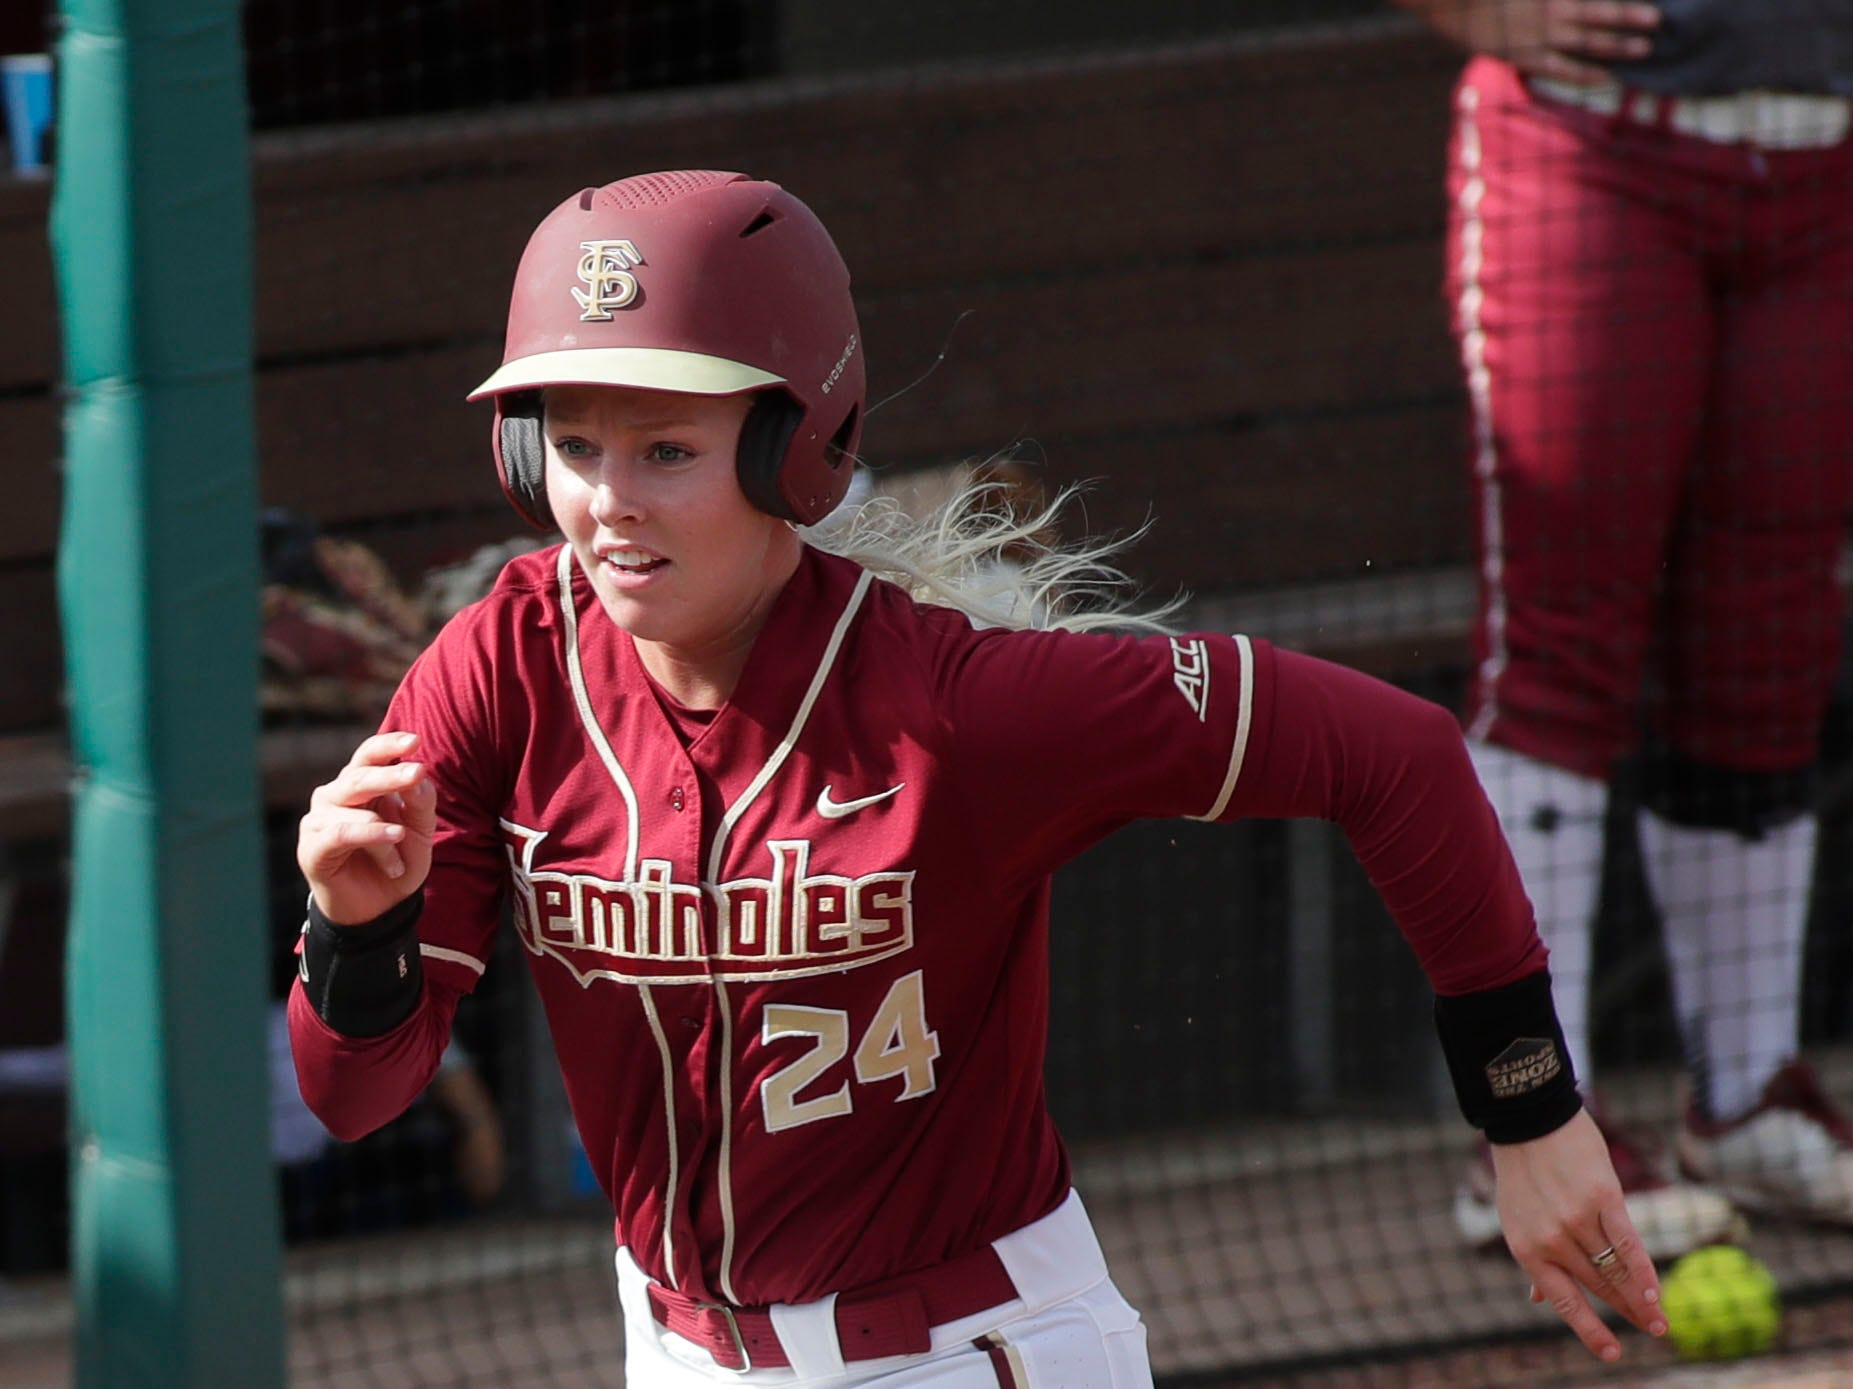 Florida State Seminoles utility player Sydney Sherrill (24) runs home. The Florida State Seminoles host the Elon Phoenixes for the Unconquered Tournament, Friday Feb. 22, 2019.